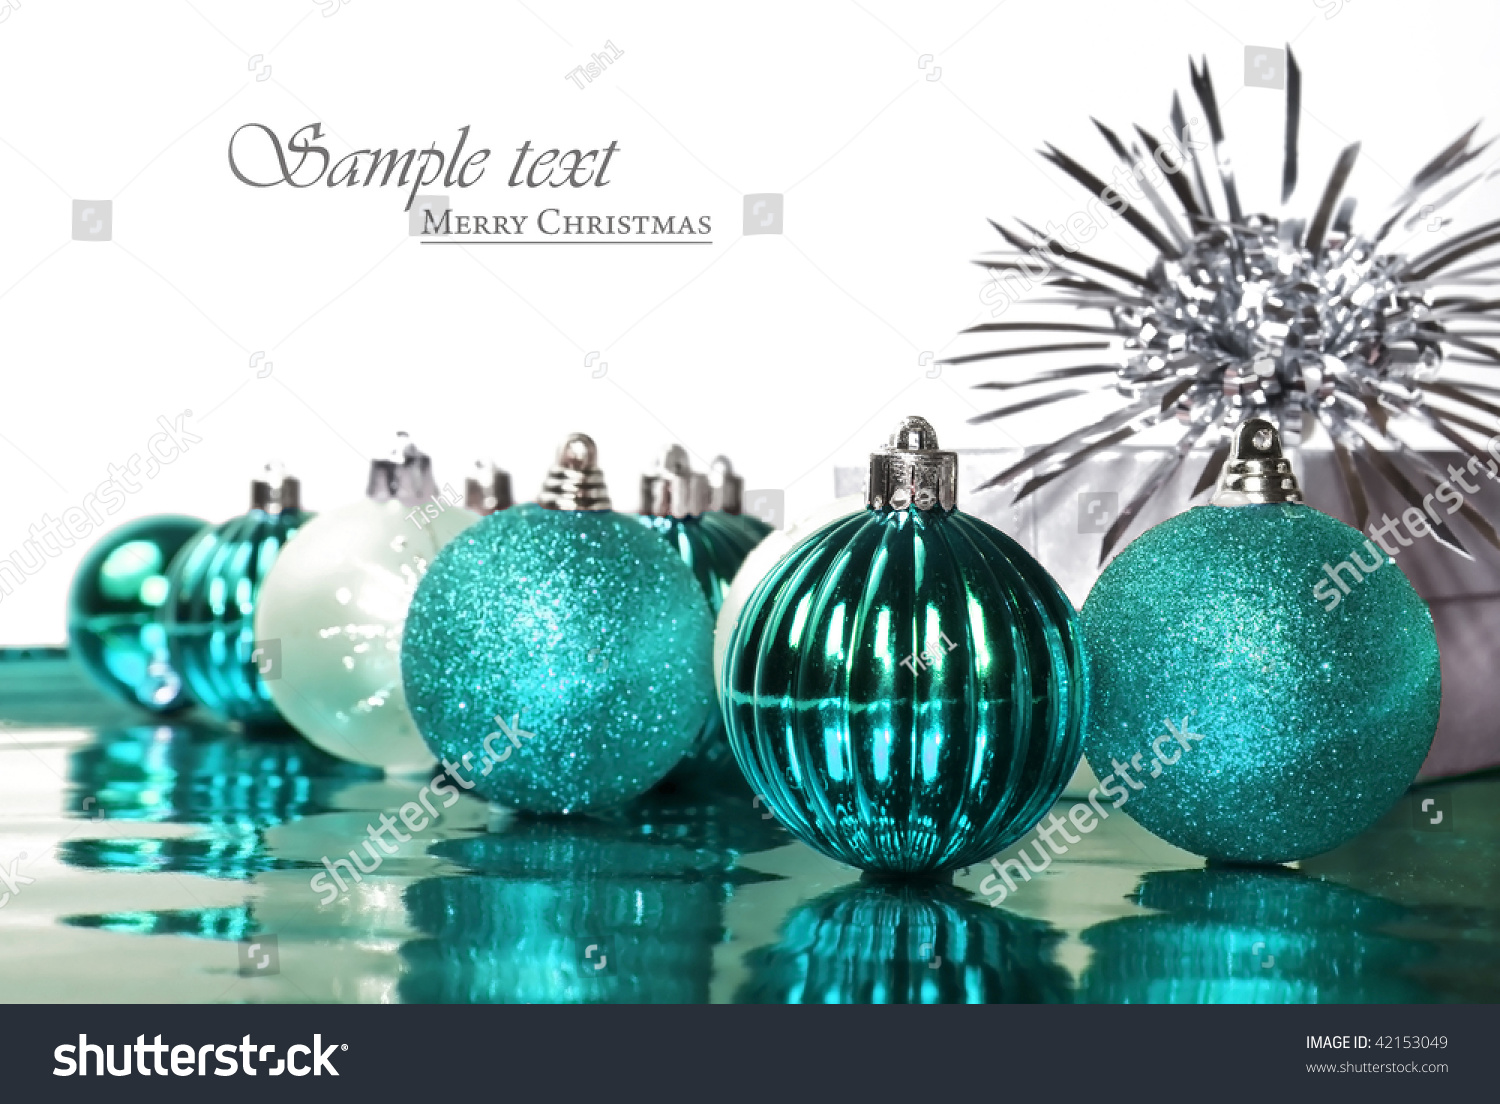 turquoise blue christmas decorations with stars on a white background with space for text